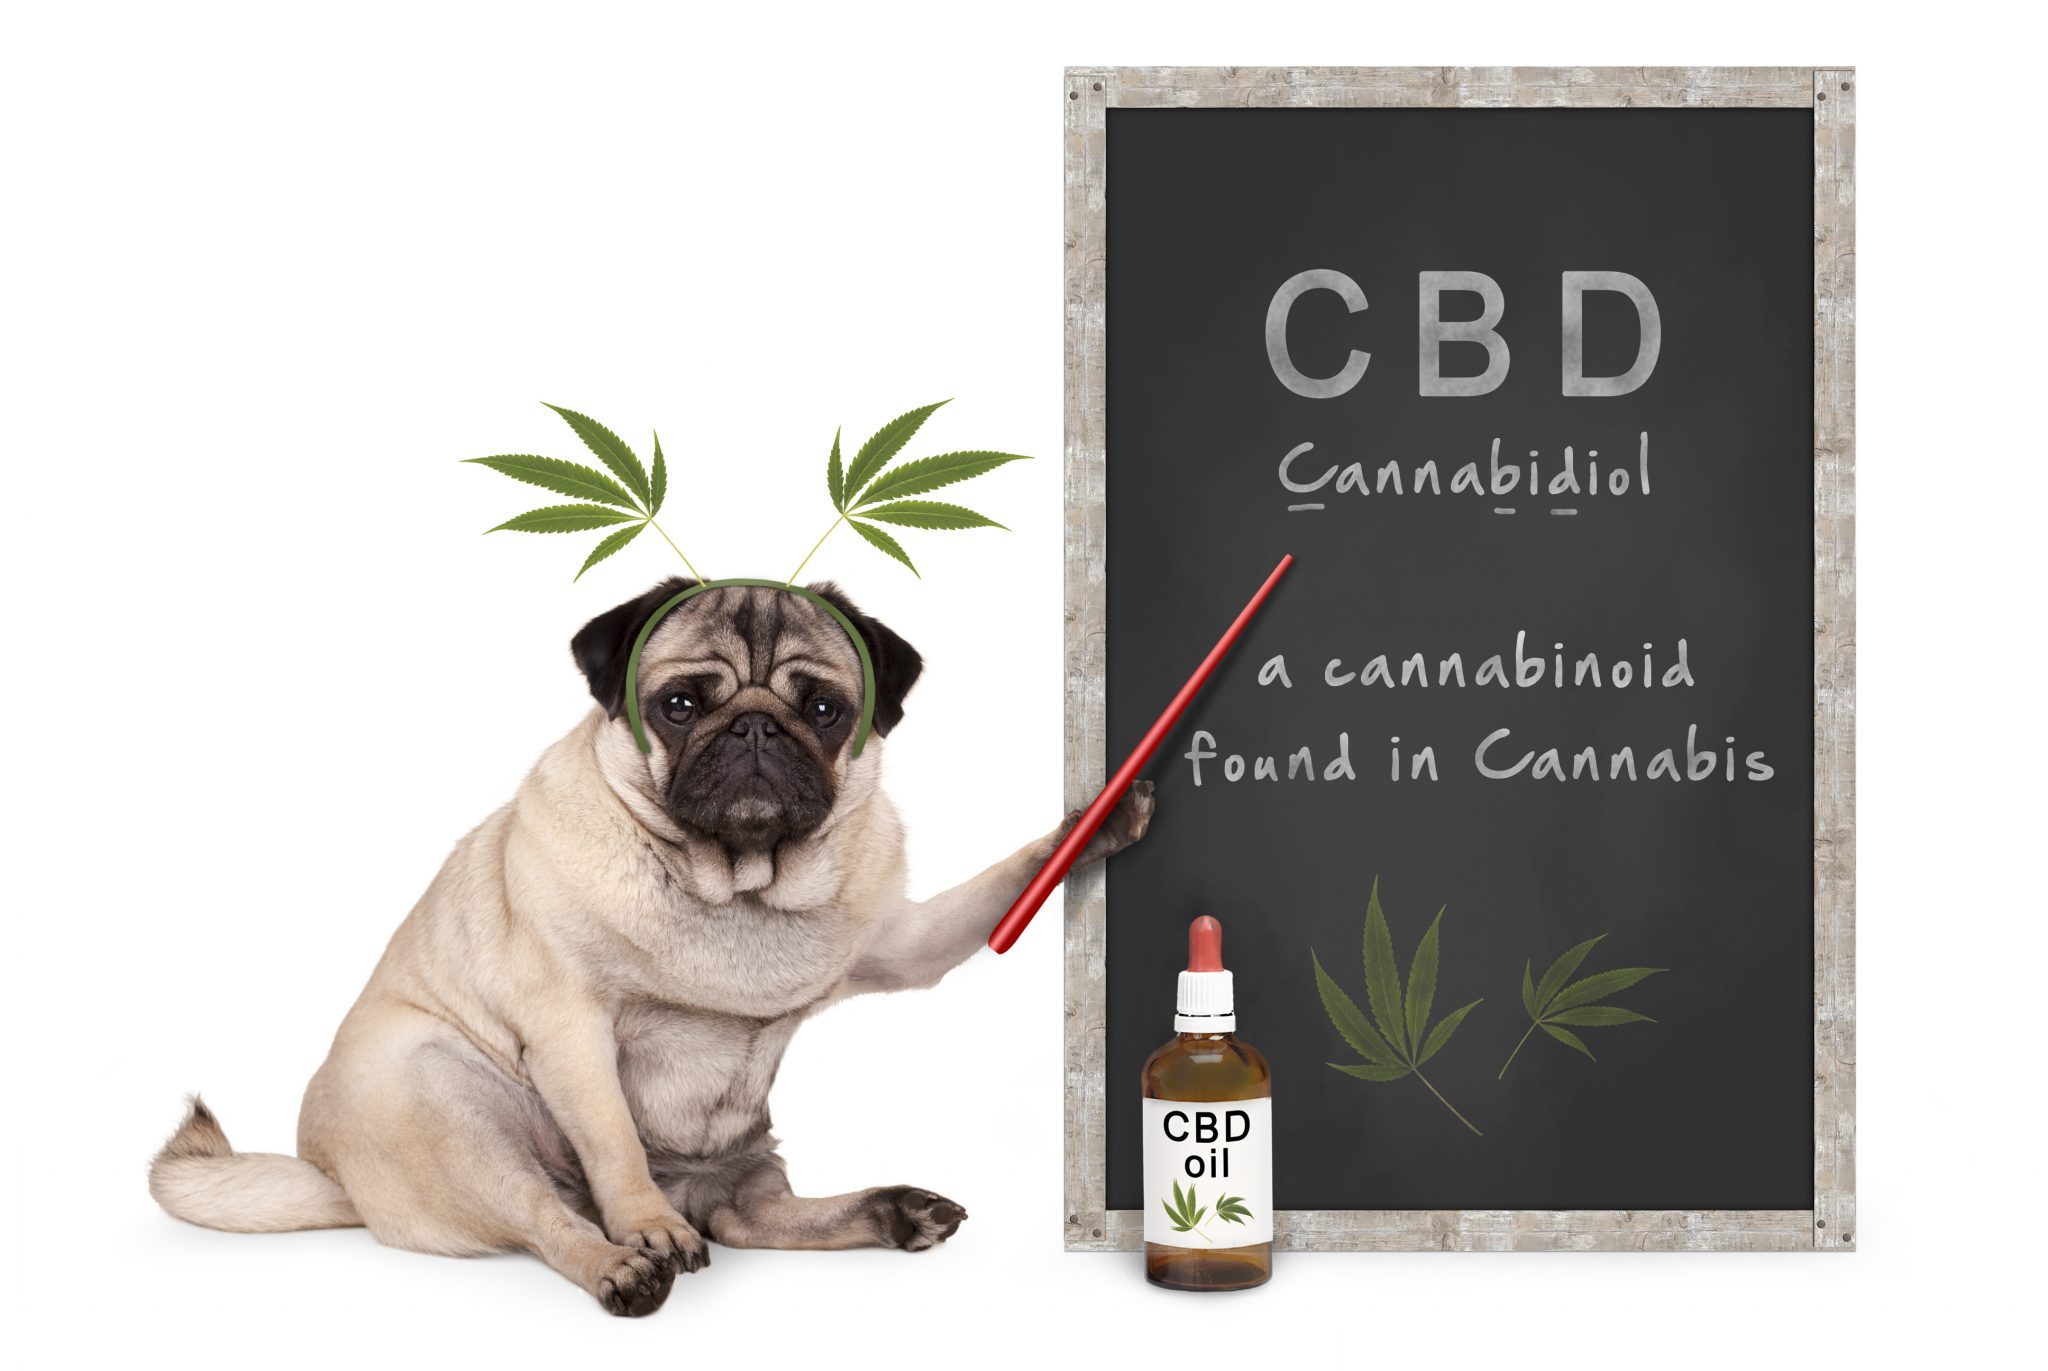 6 Benefits of CBD Oil for Dogs